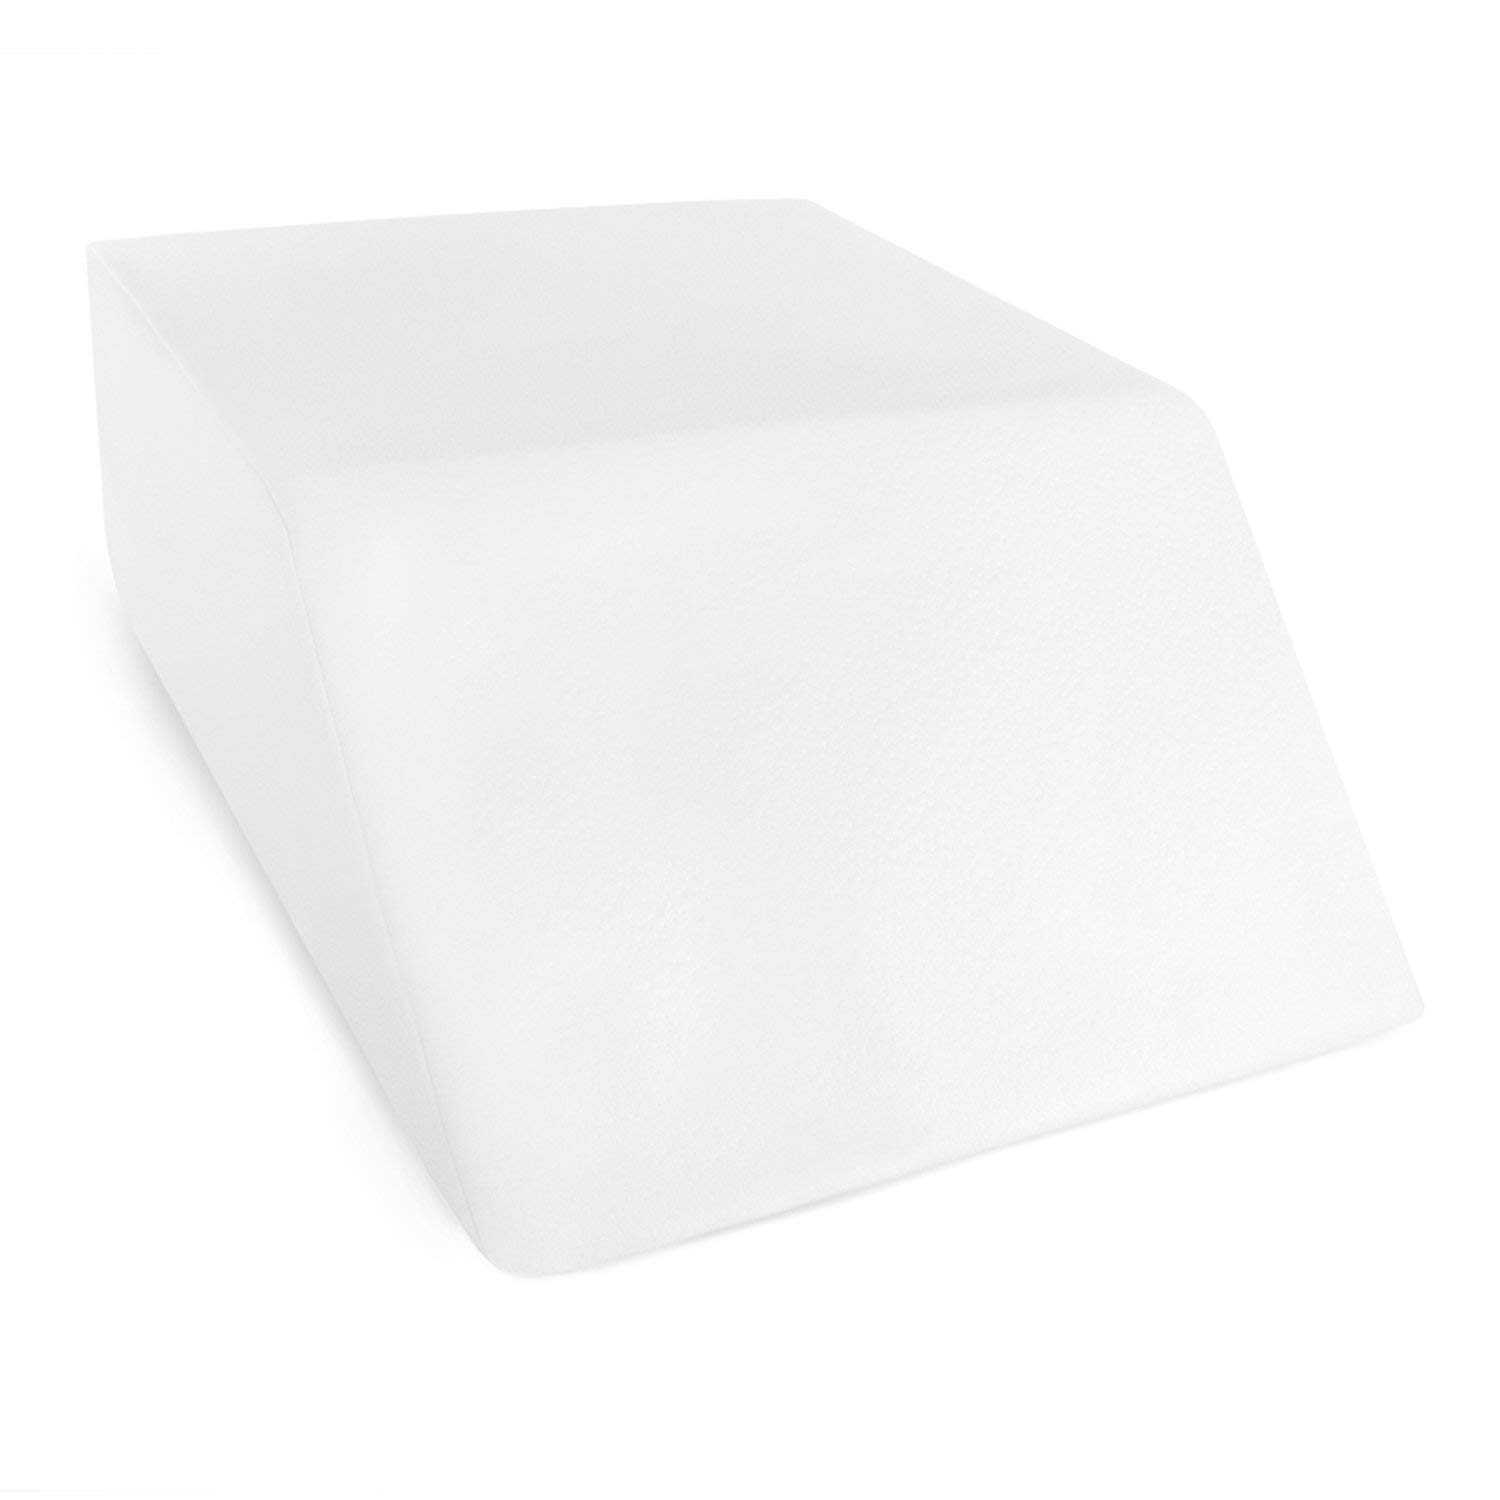 Restorology Elevating Foam Leg Rest Pillow - Wedge Pillow - Reduces Back Pain and Improves Circulation - Includes Removable Cover by Restorology